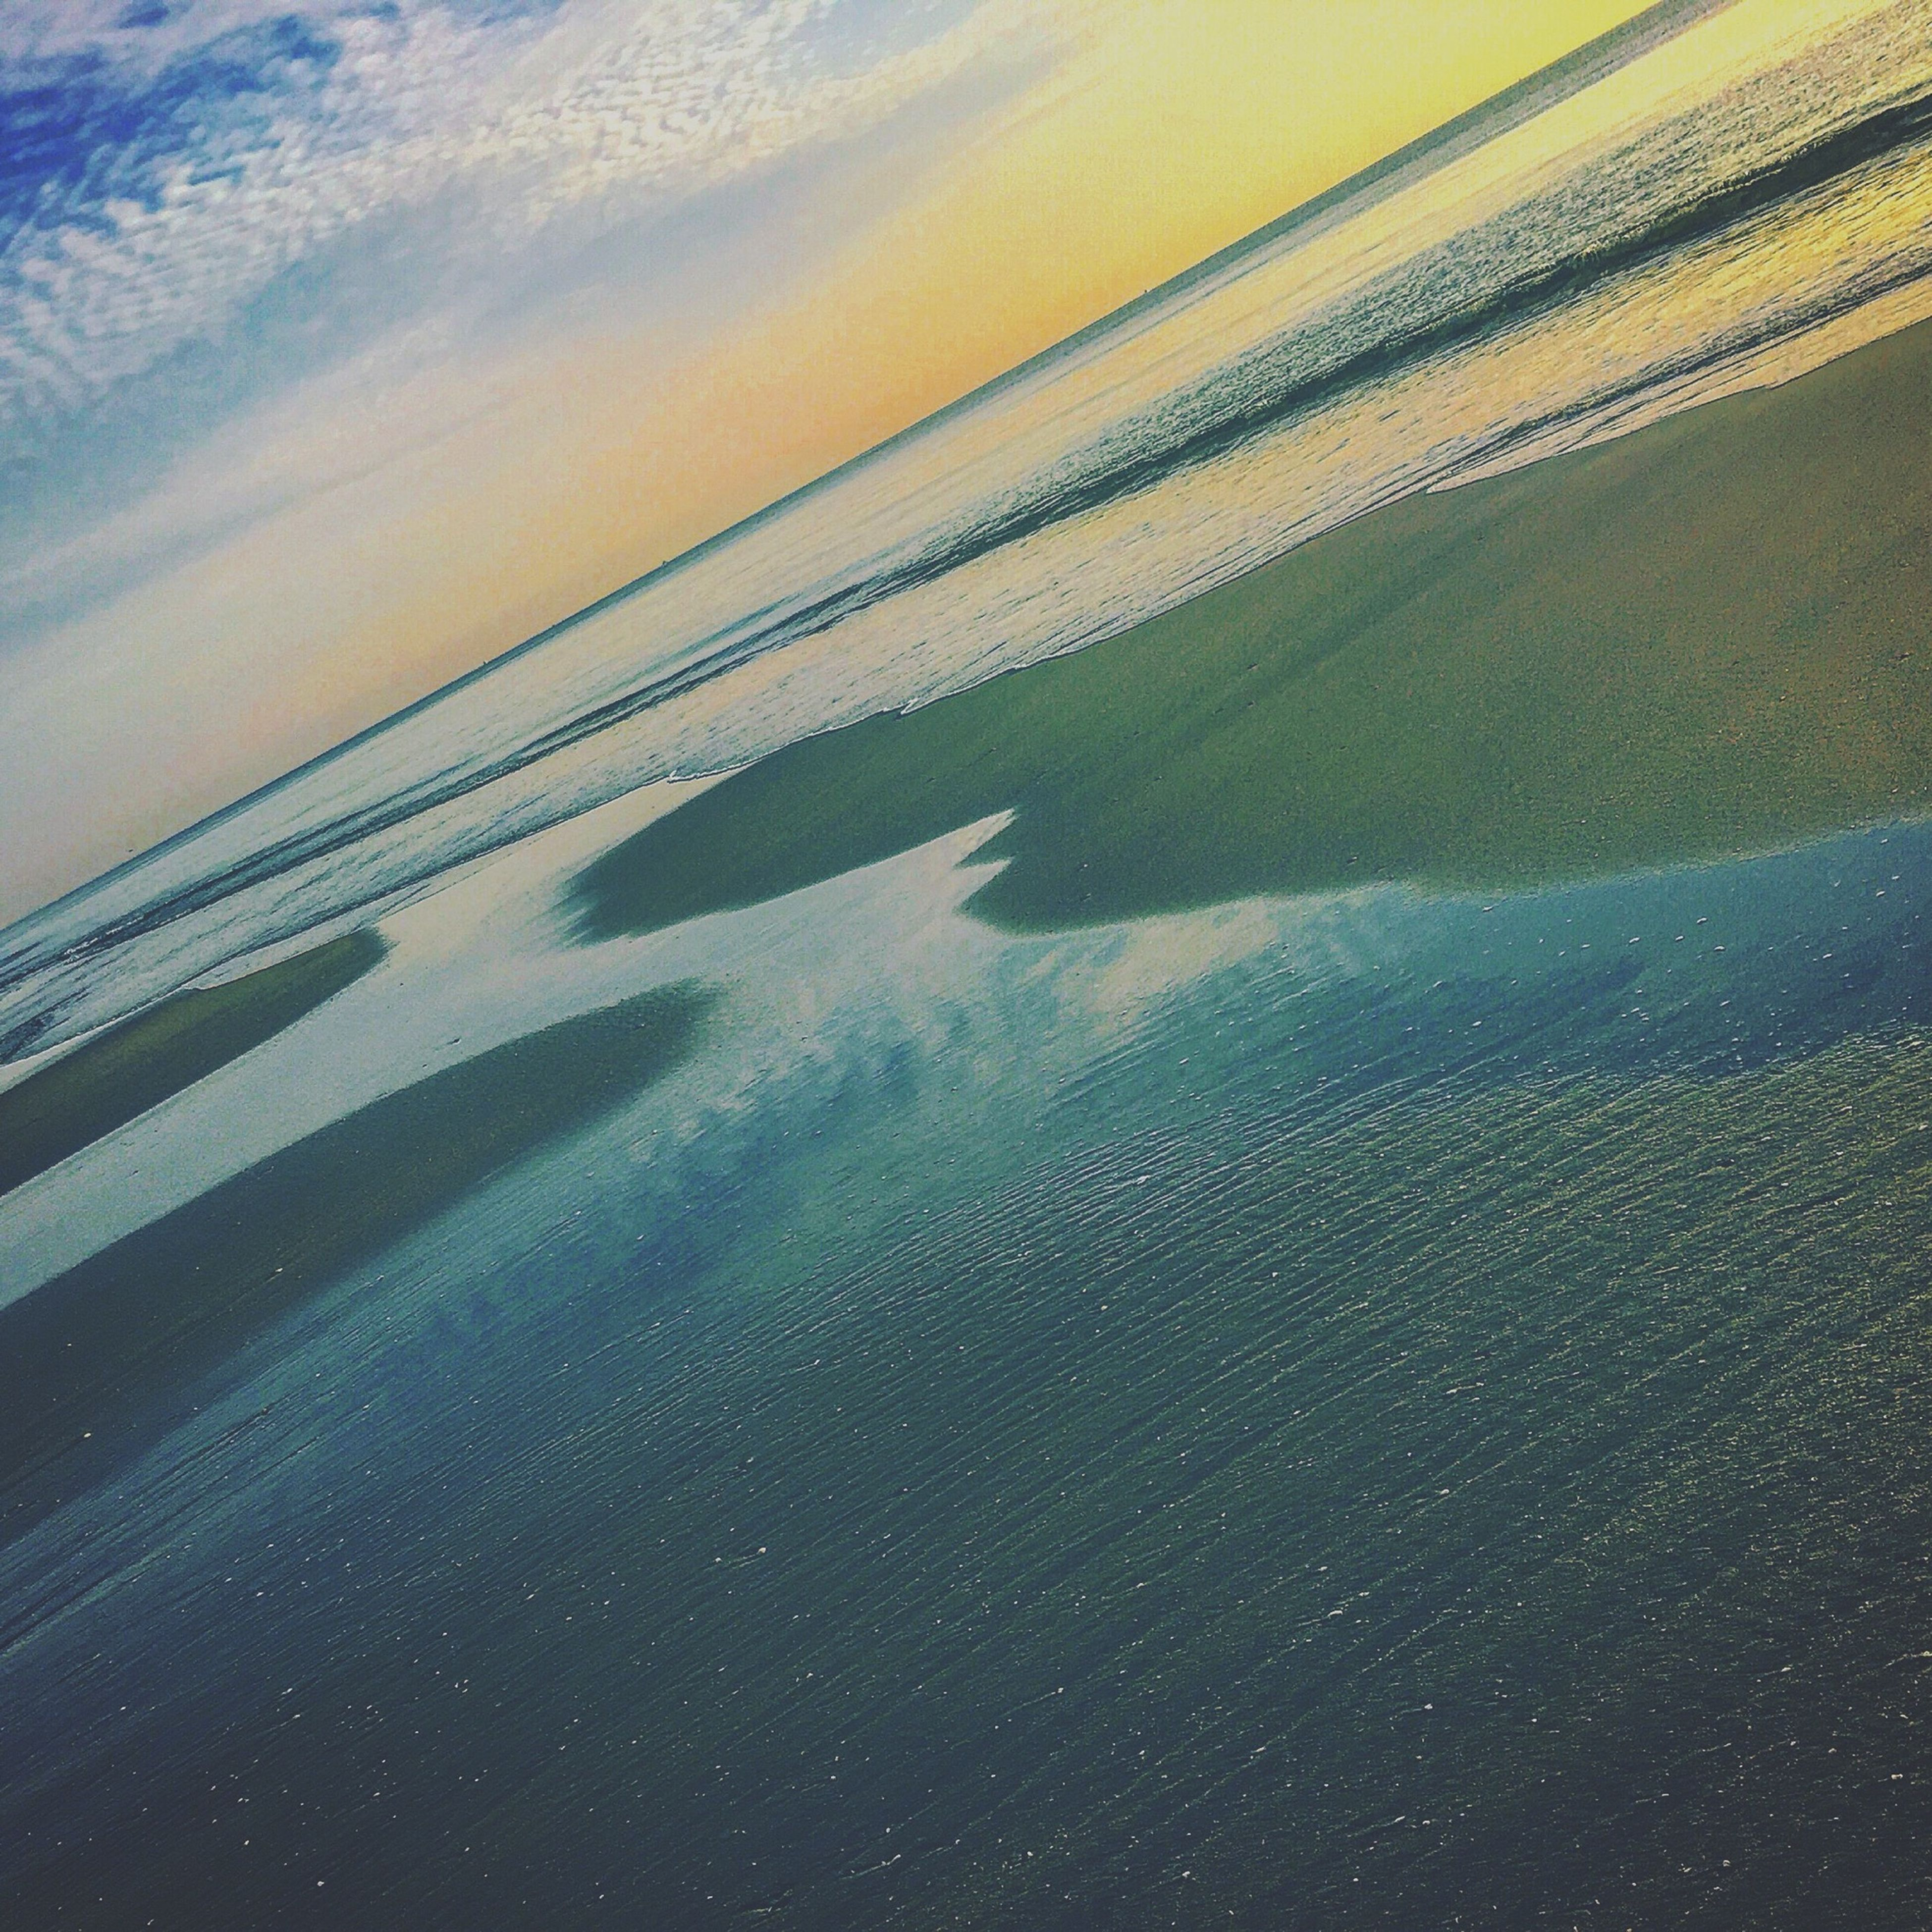 Graffiti In The Sand Rivers And Ocean Reflection Sliver Blue Sunrise Walking Around